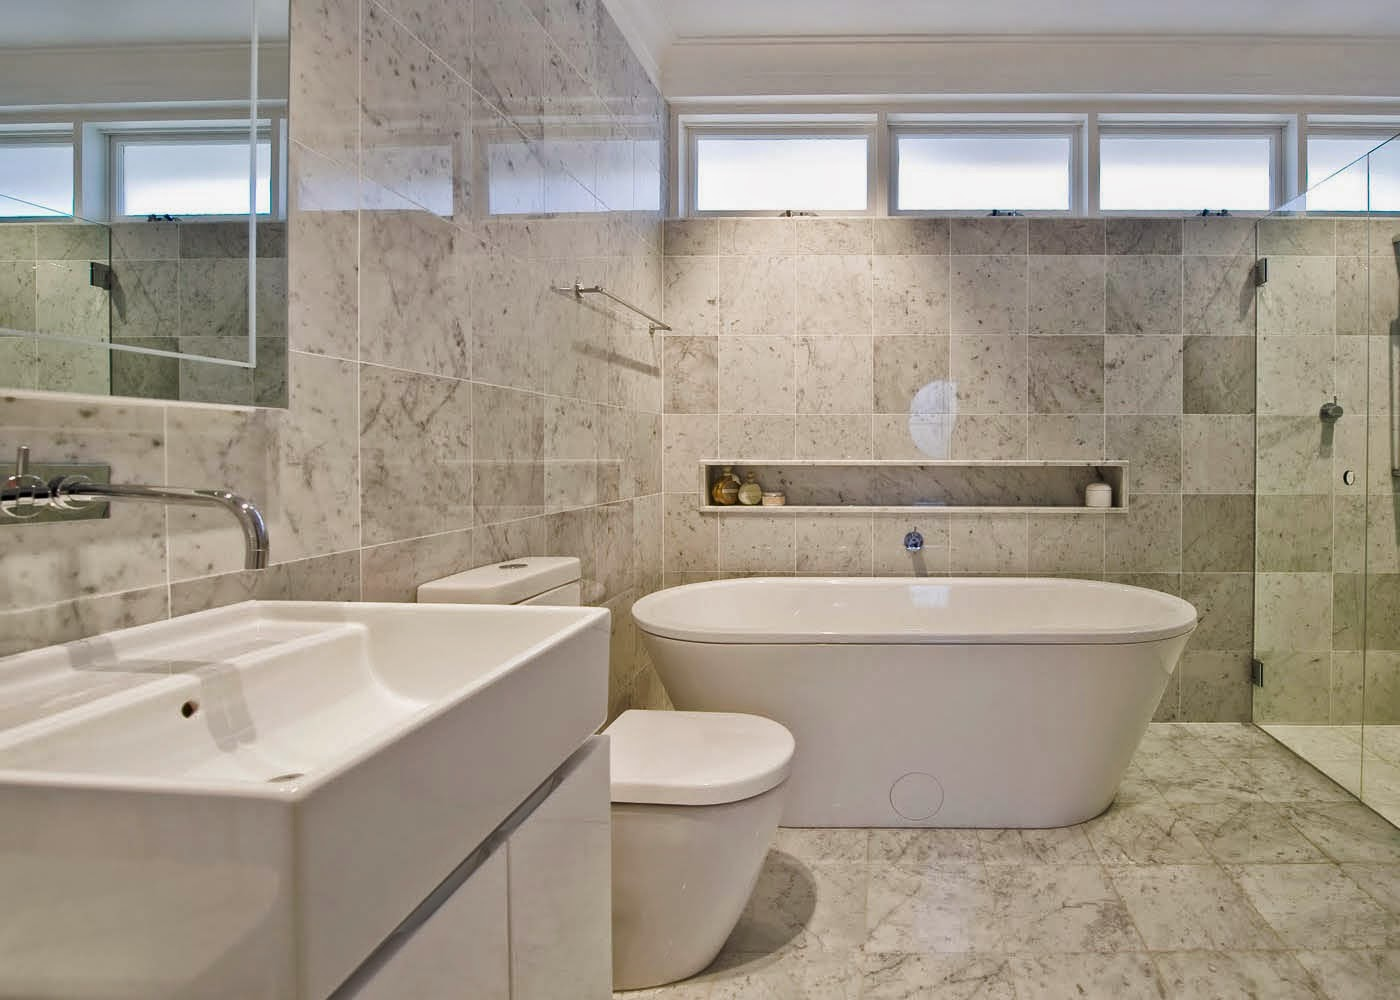 Basic Bathroom Ideas - Home Design